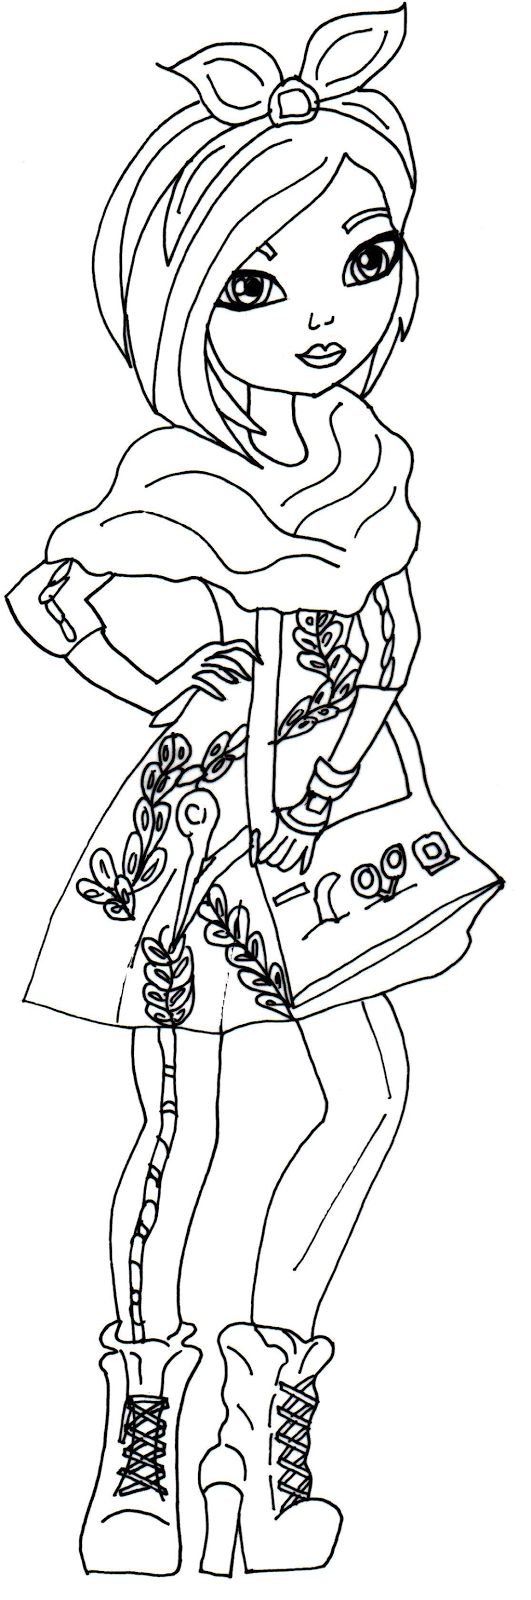 Free Printable Ever After High Coloring Pages Holly OHair